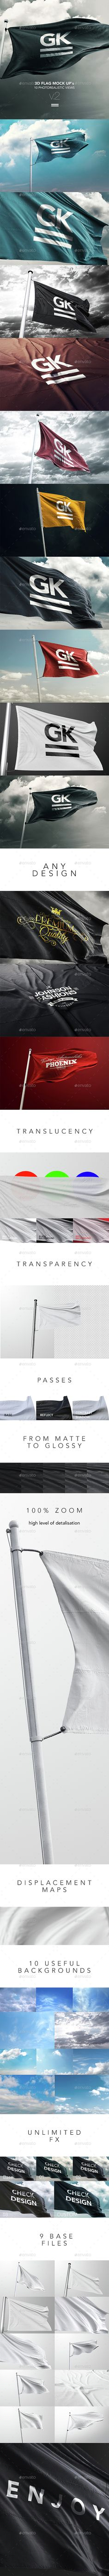 10 Realistic 3D Flag Mock-Up V2.0. Download here: http://graphicriver.net/item/10-realistic-3d-flag-mockup/14602197?ref=ksioks